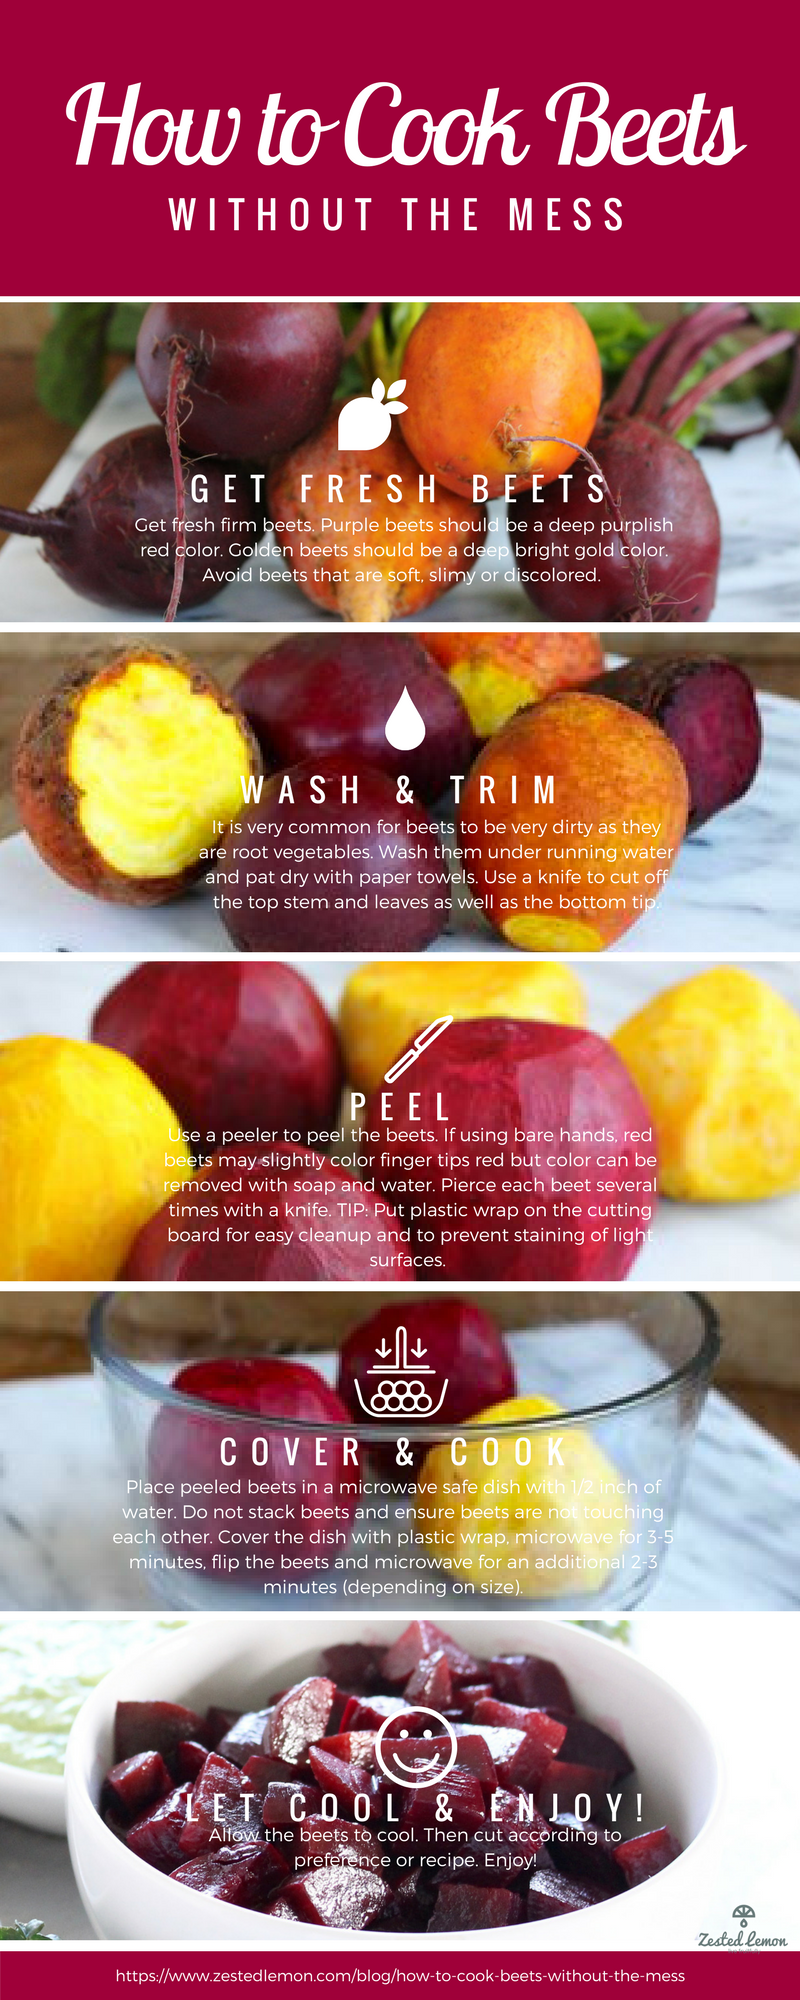 How to Cook Beets without the Mess (1).png